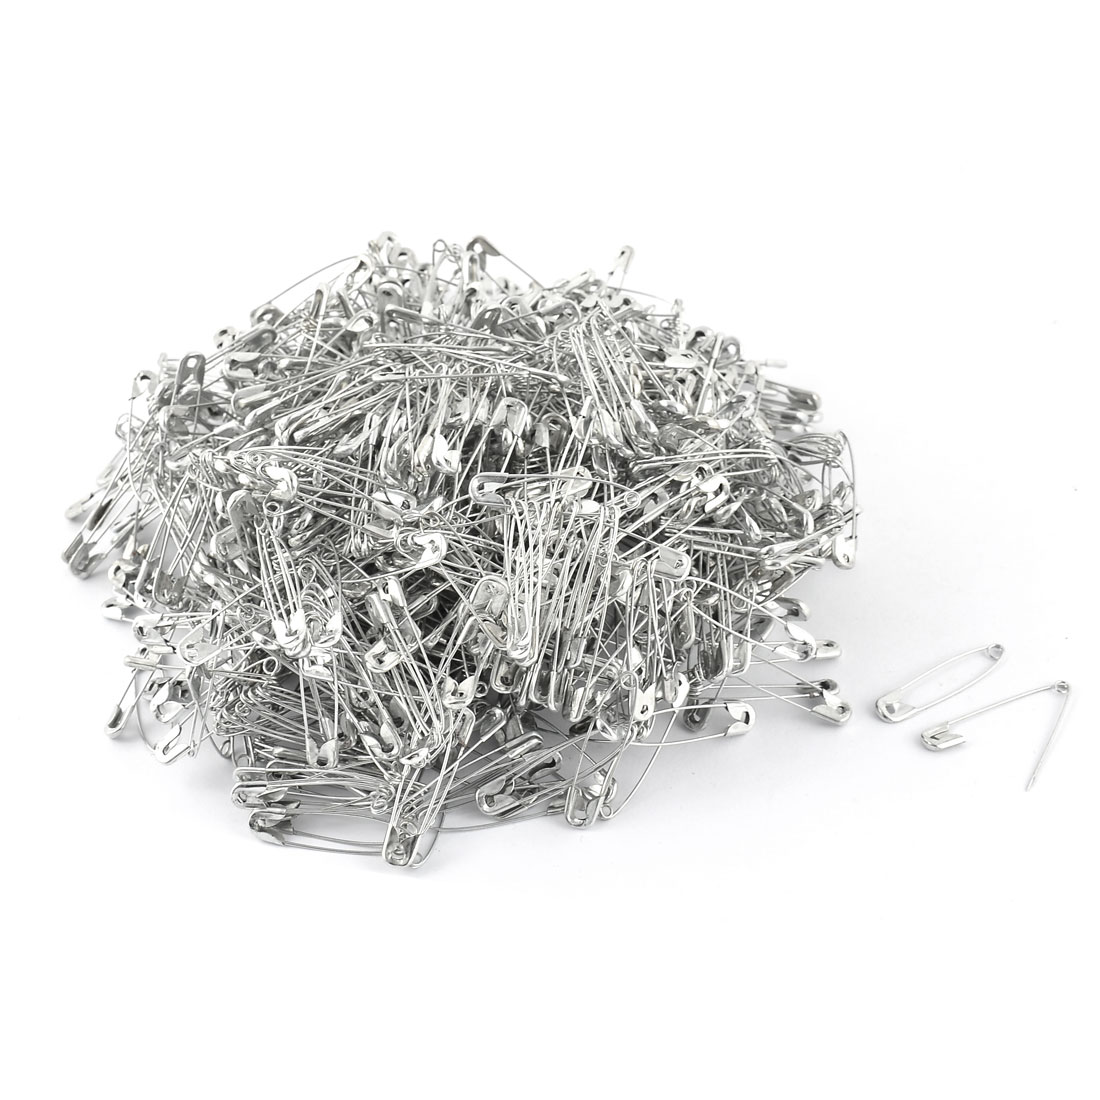 Metal Costume Sewing Dressmaking Craft Safety Pins Silver Tone 1000pcs